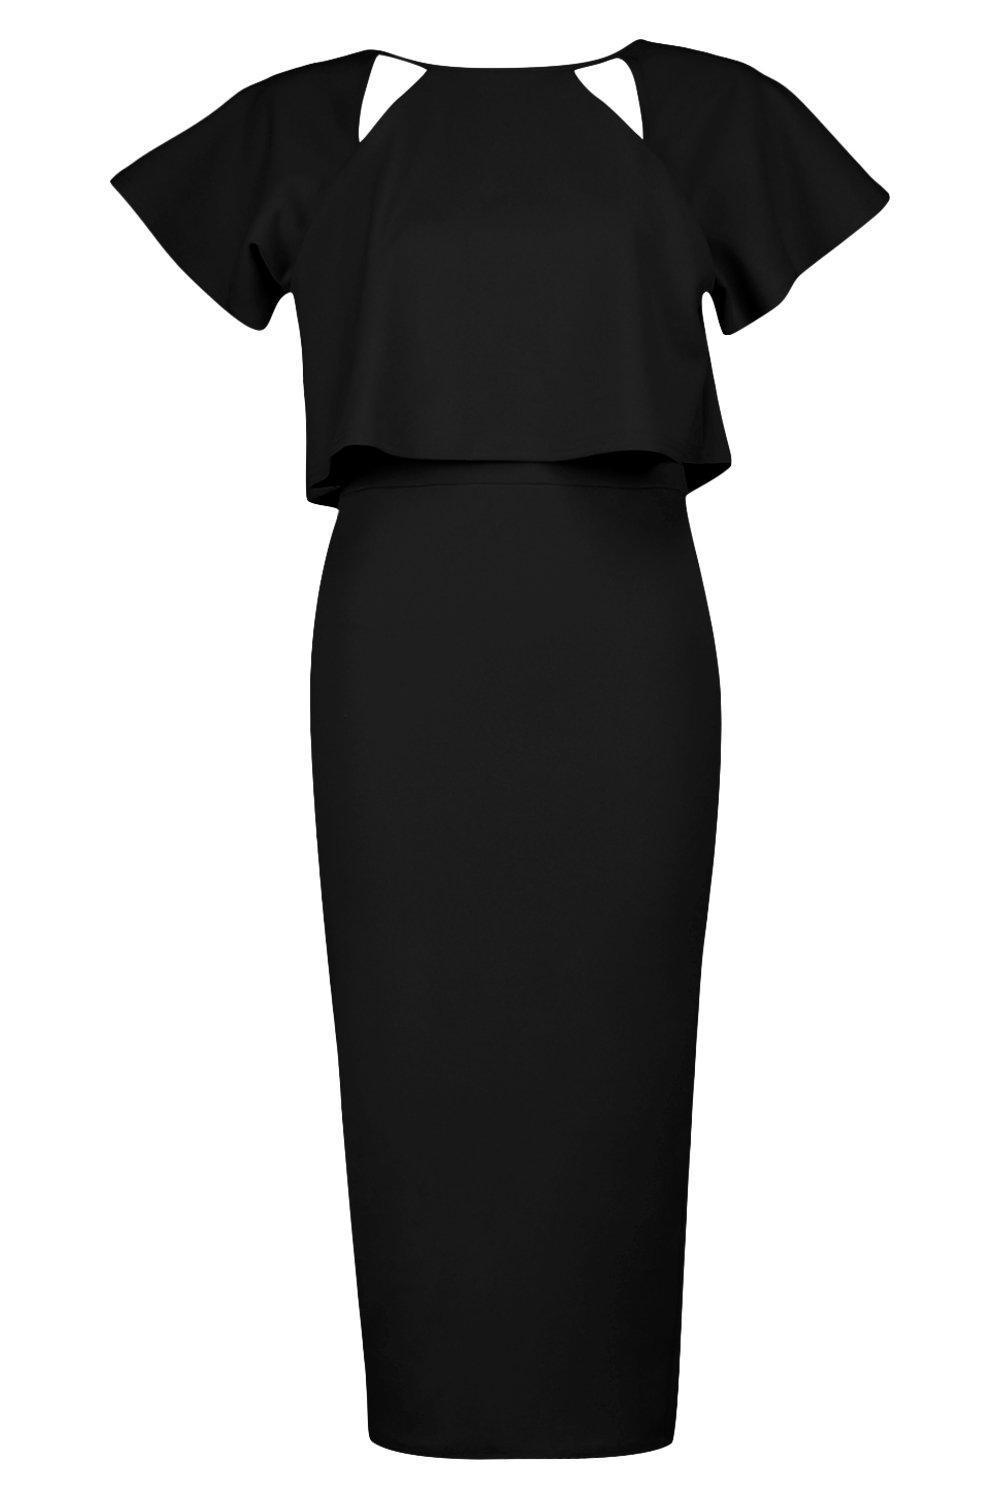 dbeaaad11f6d Boohoo Naomi Formal Frill Double Layer Midi Dress in Black - Lyst